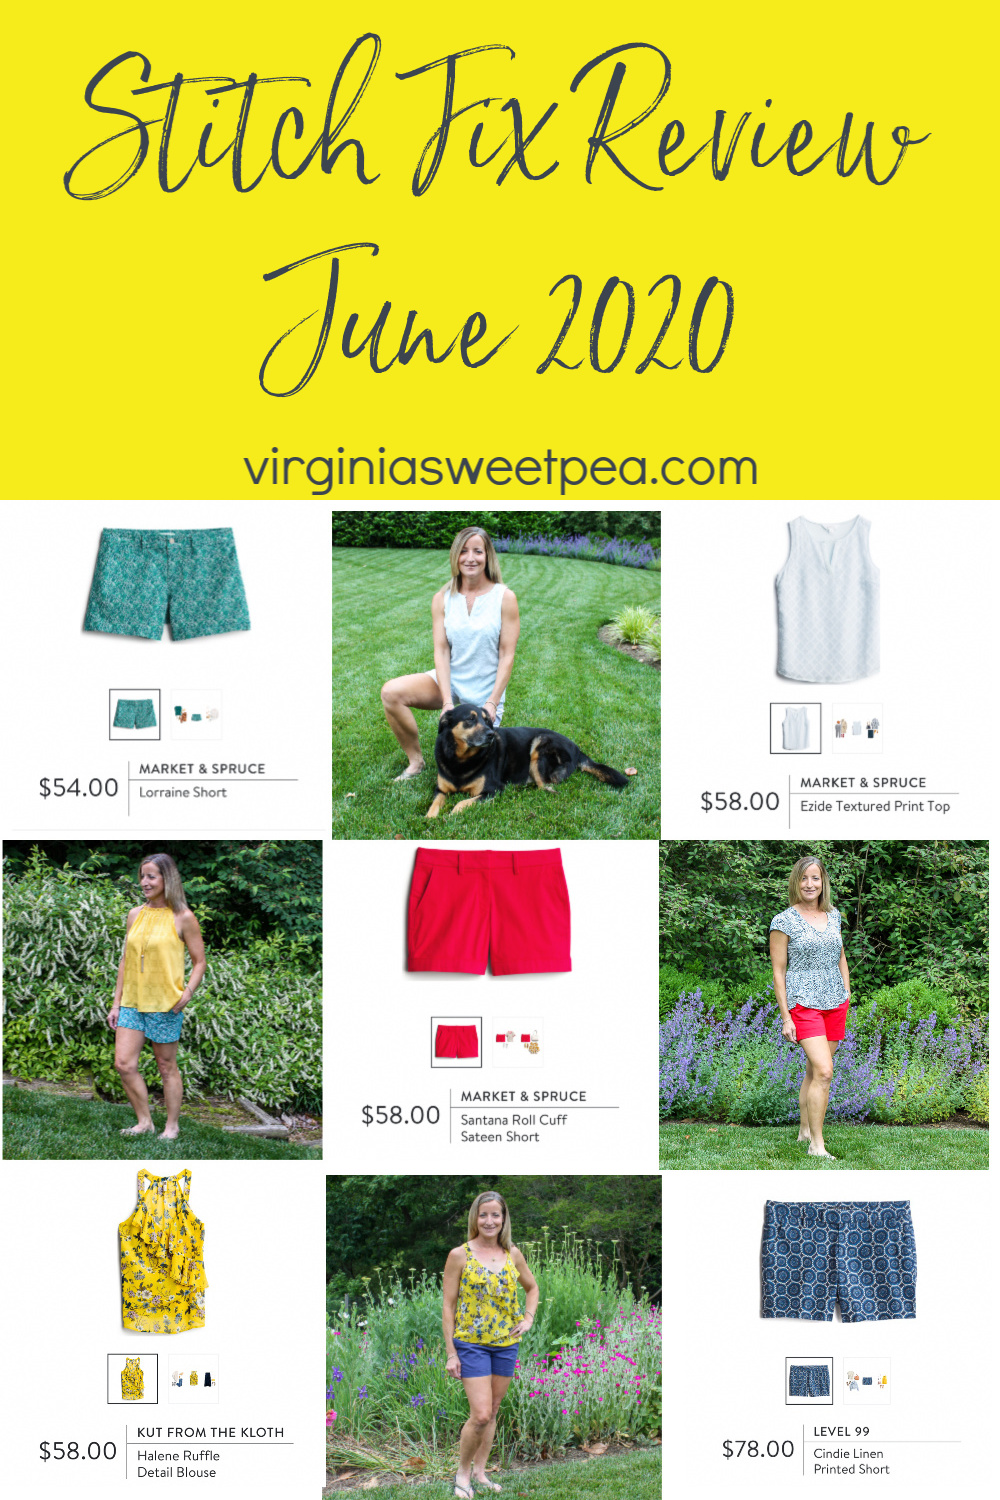 Stitch Fix Review for June 2020 - See the fashions selected by my stylist for summer.  #stitchfix #stitchfixreview #stitchfixstyle via @spaula